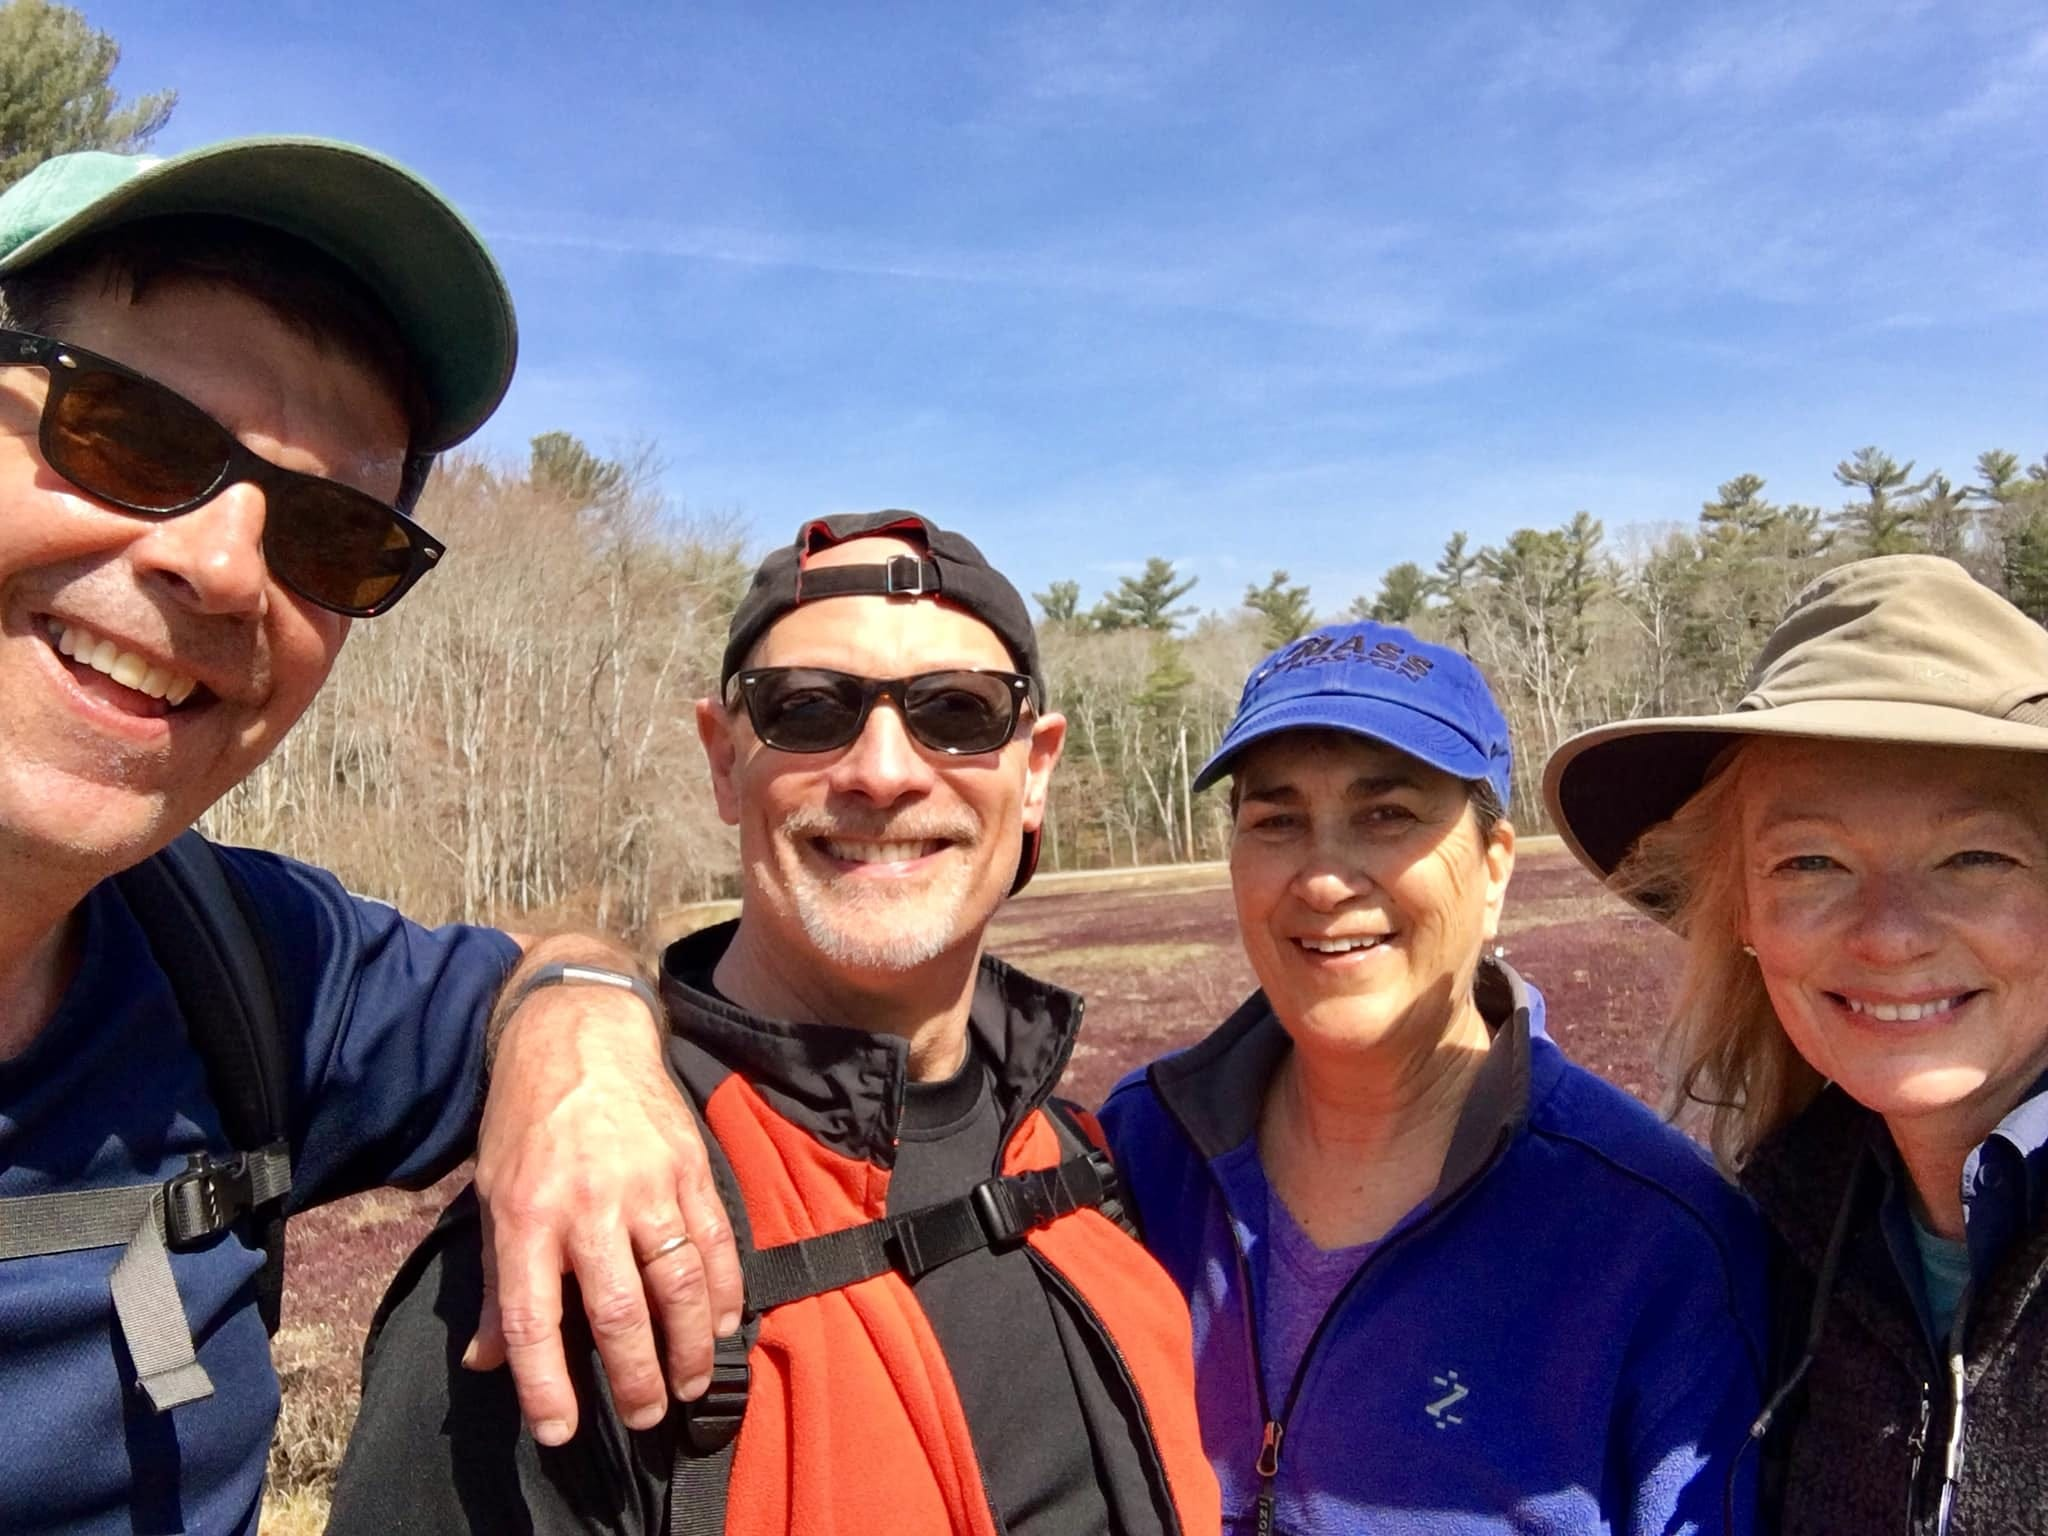 From left, Rich Harbert, Dan and Marj Kobrin, and Sue Harbert pause for a selfie as they set out on the Bay Circuit Trail.